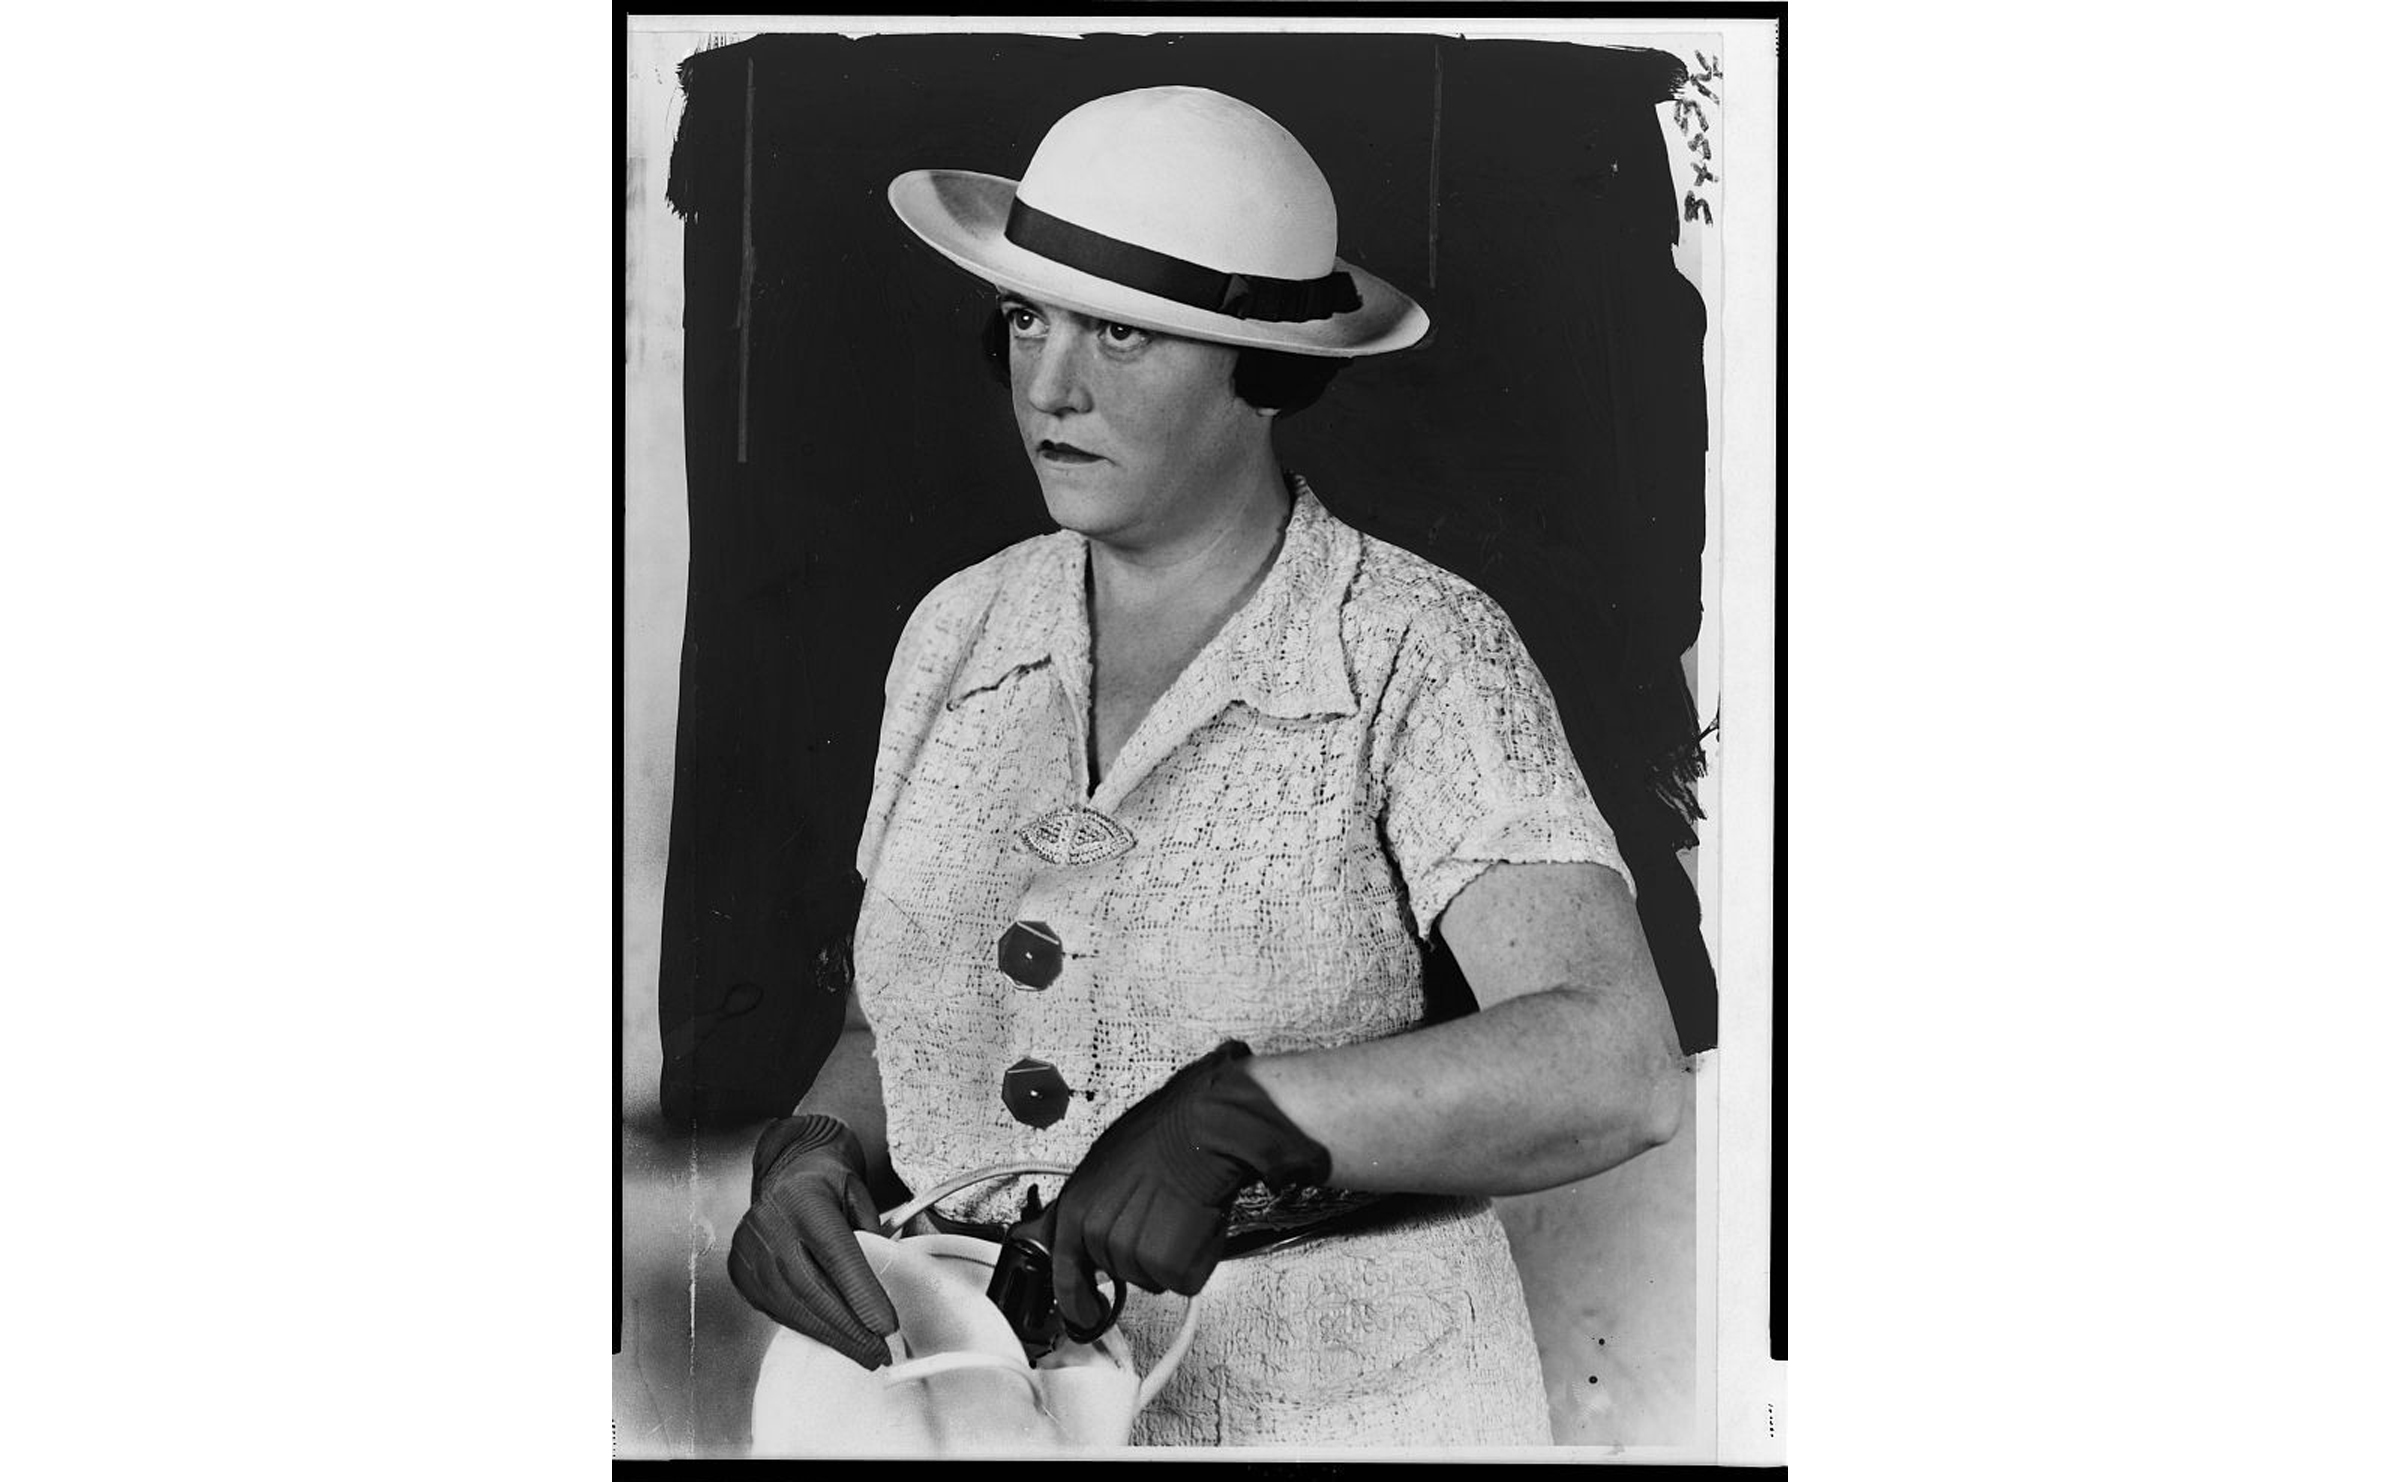 Shanley pulling a pistol from her handbag, 1937. Photo: Library of Congress.